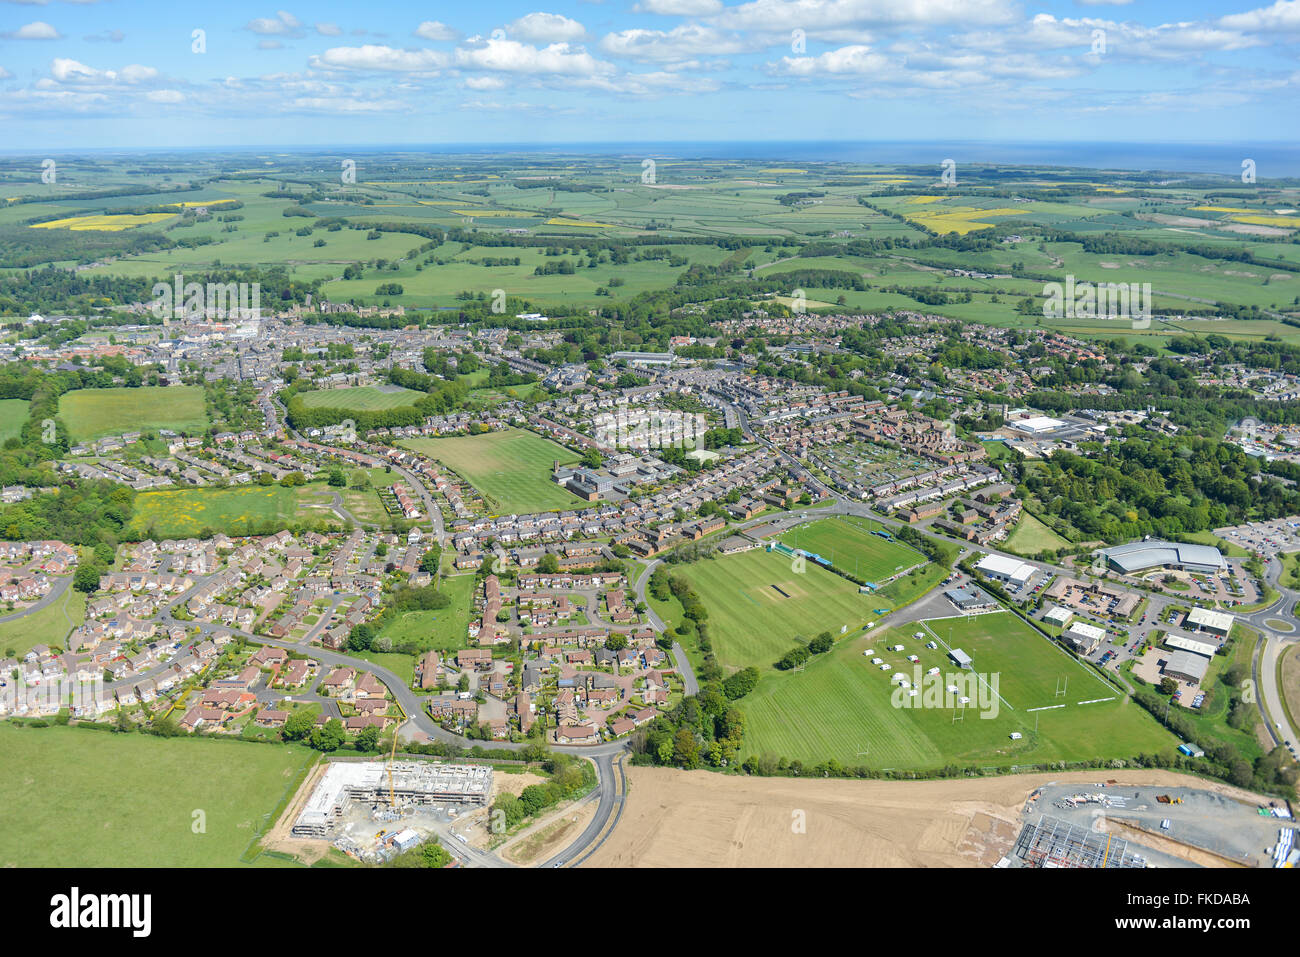 General views of the Northumberland town of Alnwick and surrounding countryside - Stock Image